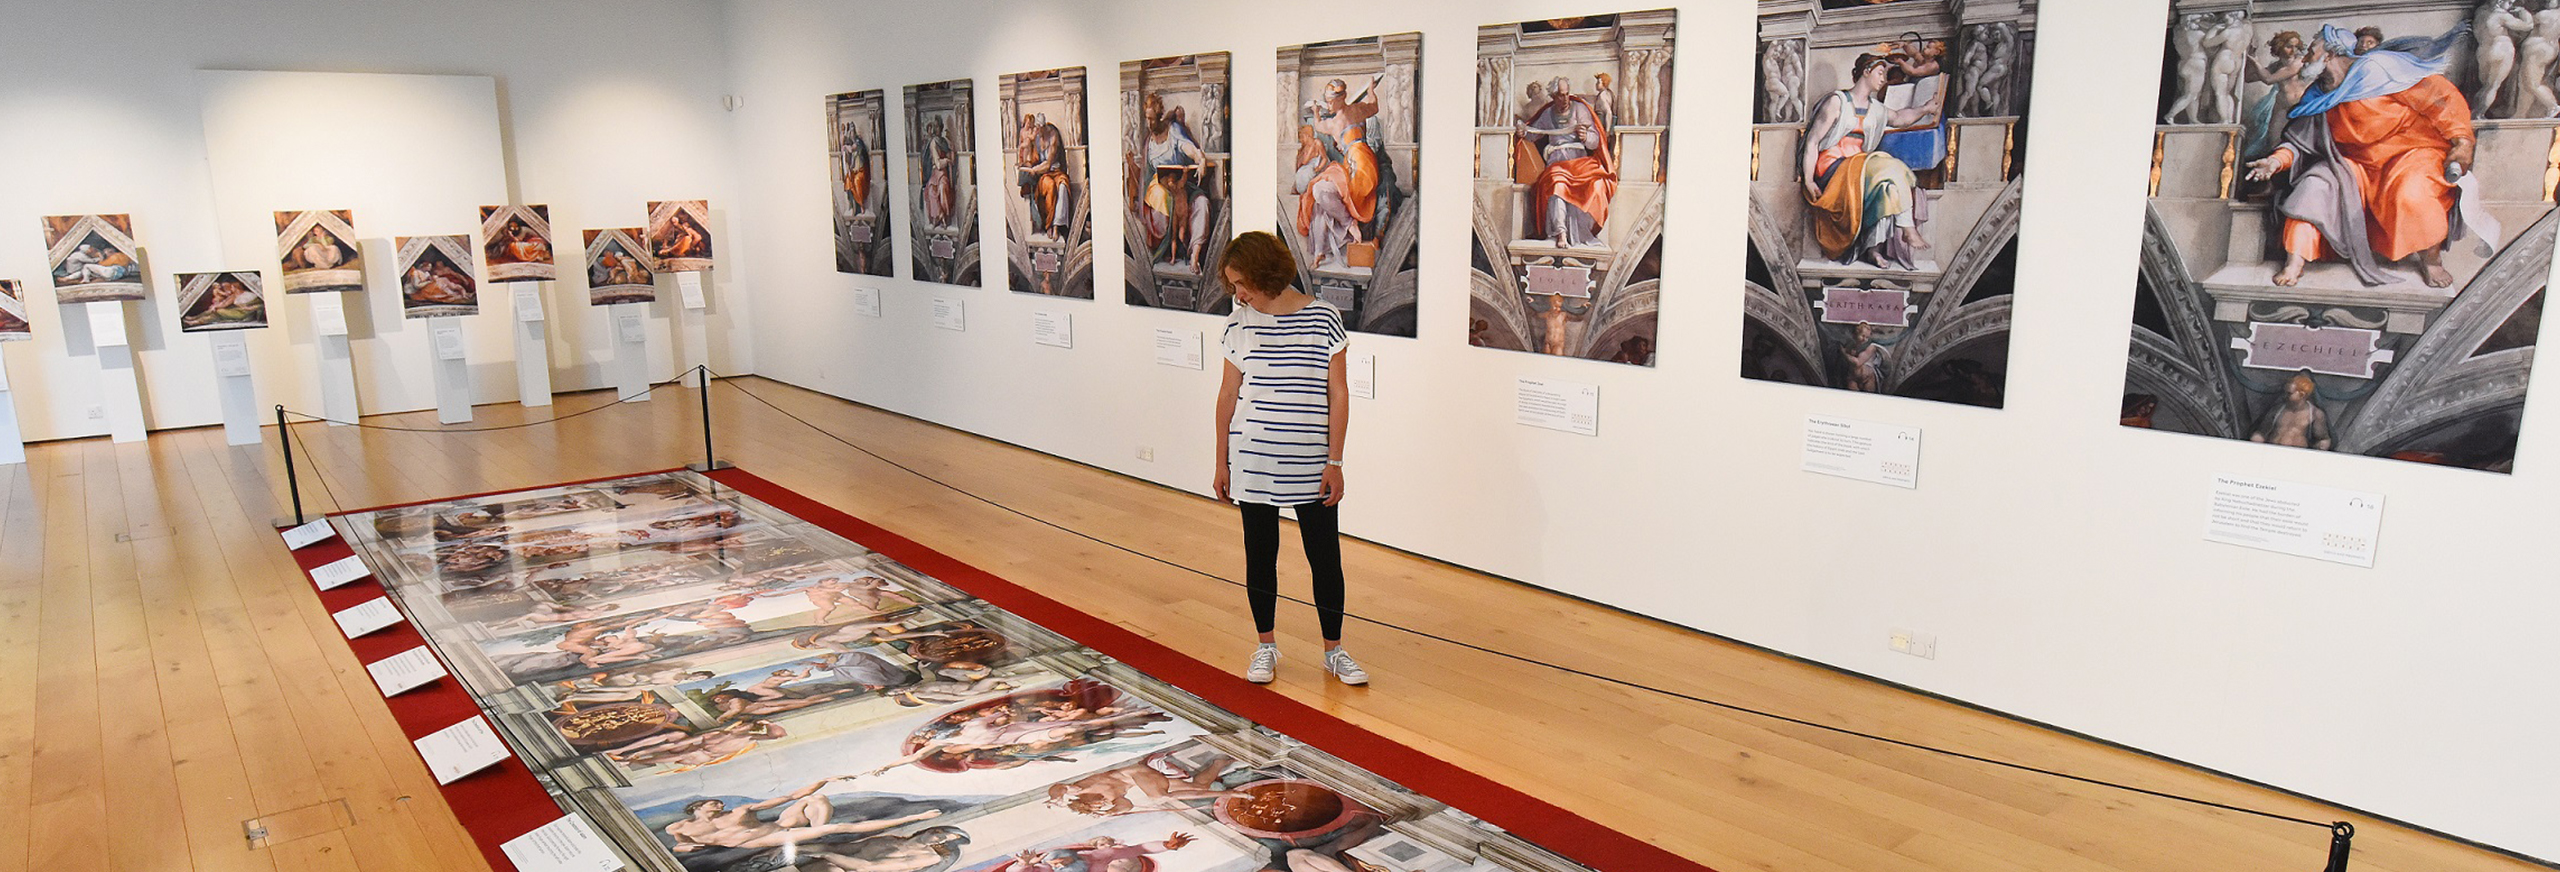 Leading local businesses are supporting the Sistine Chapel exhibition at Hull Minster, enabling church leaders to make it free to visitors. This picture shows part of the exhibition when it opened recently in Winchester. Picture: Solent News & Photo Agency.